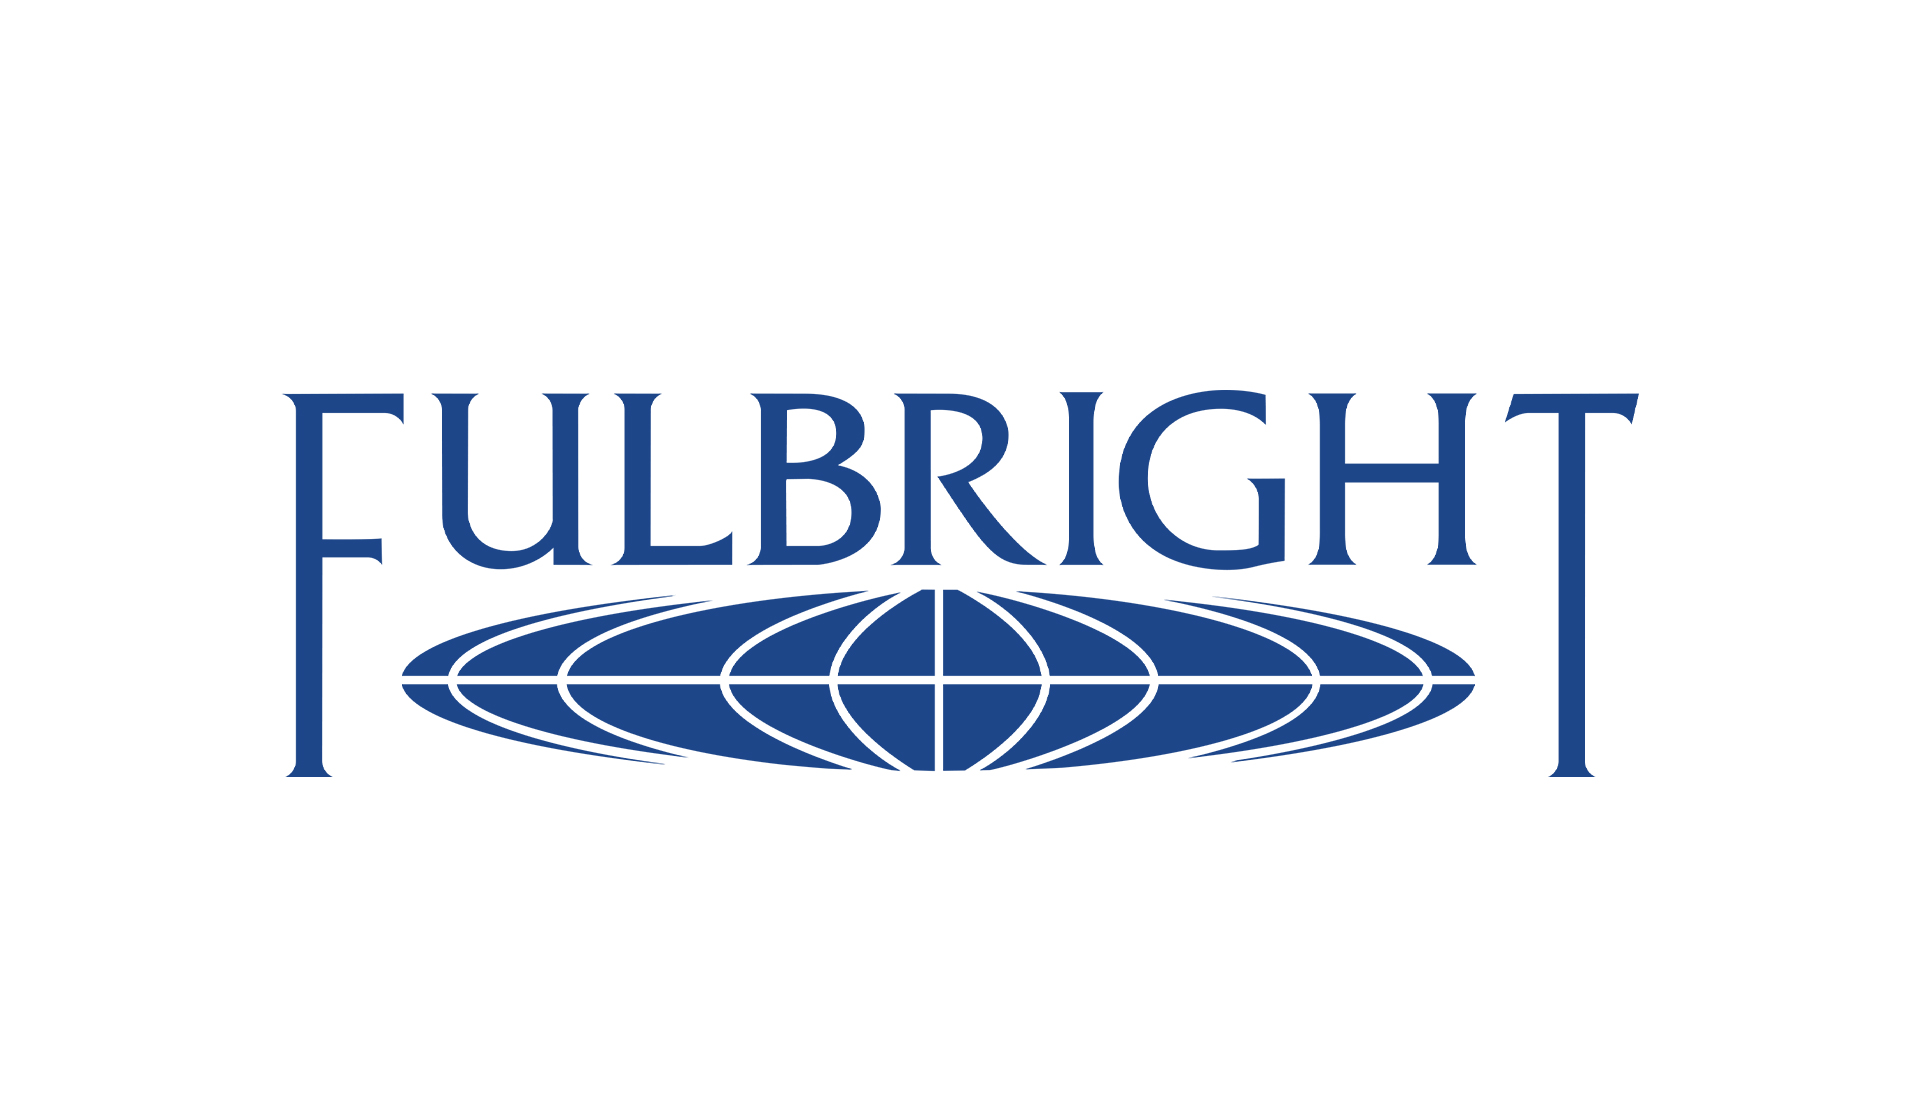 Rutgers Global - Fulbright Scholar Grants Help Jumpstart International Education and Research, Fulbright logo